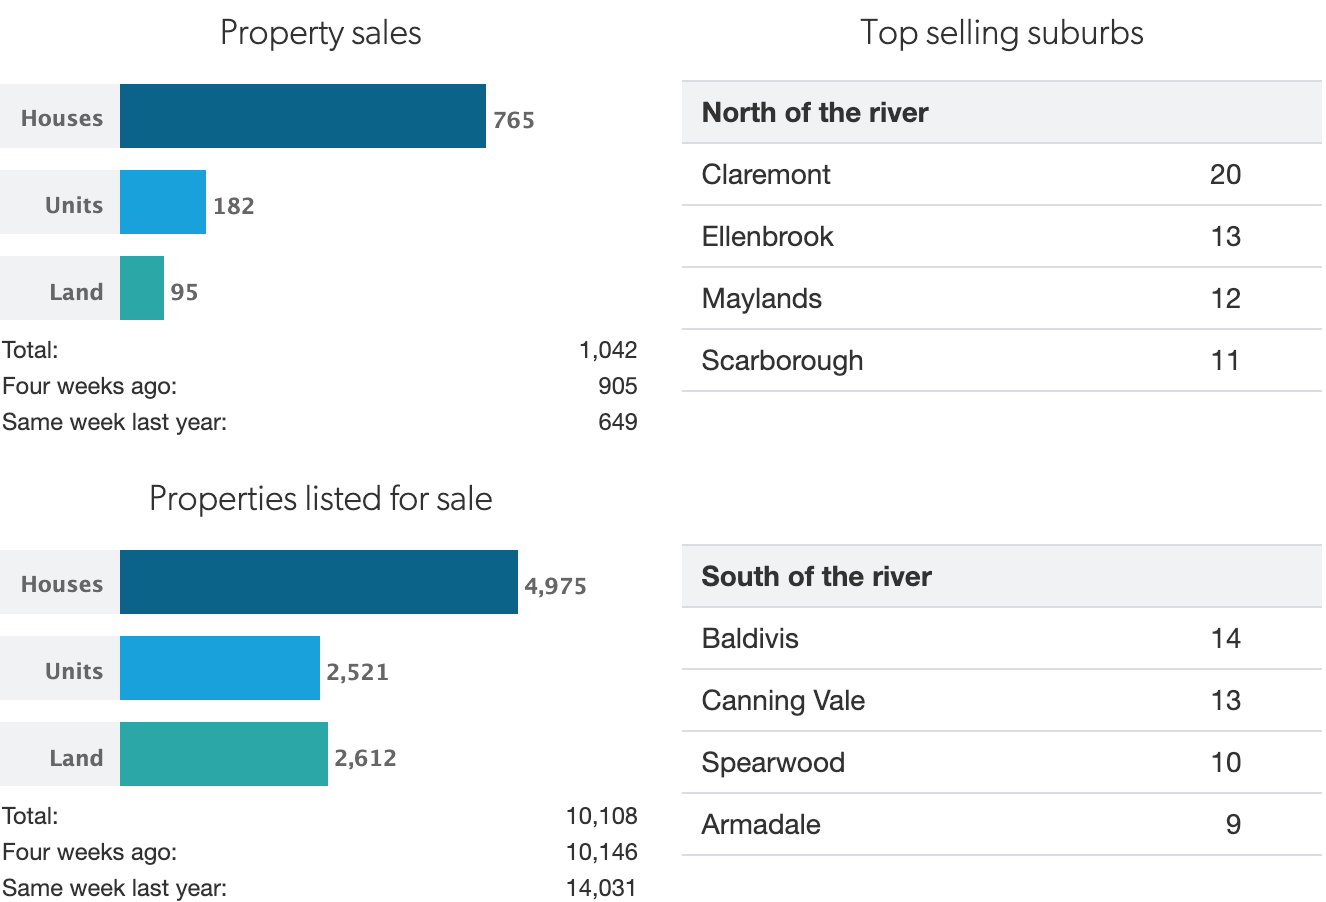 Property Sales, Top Selling Suburbs and Properties Listed for Sale in Perth